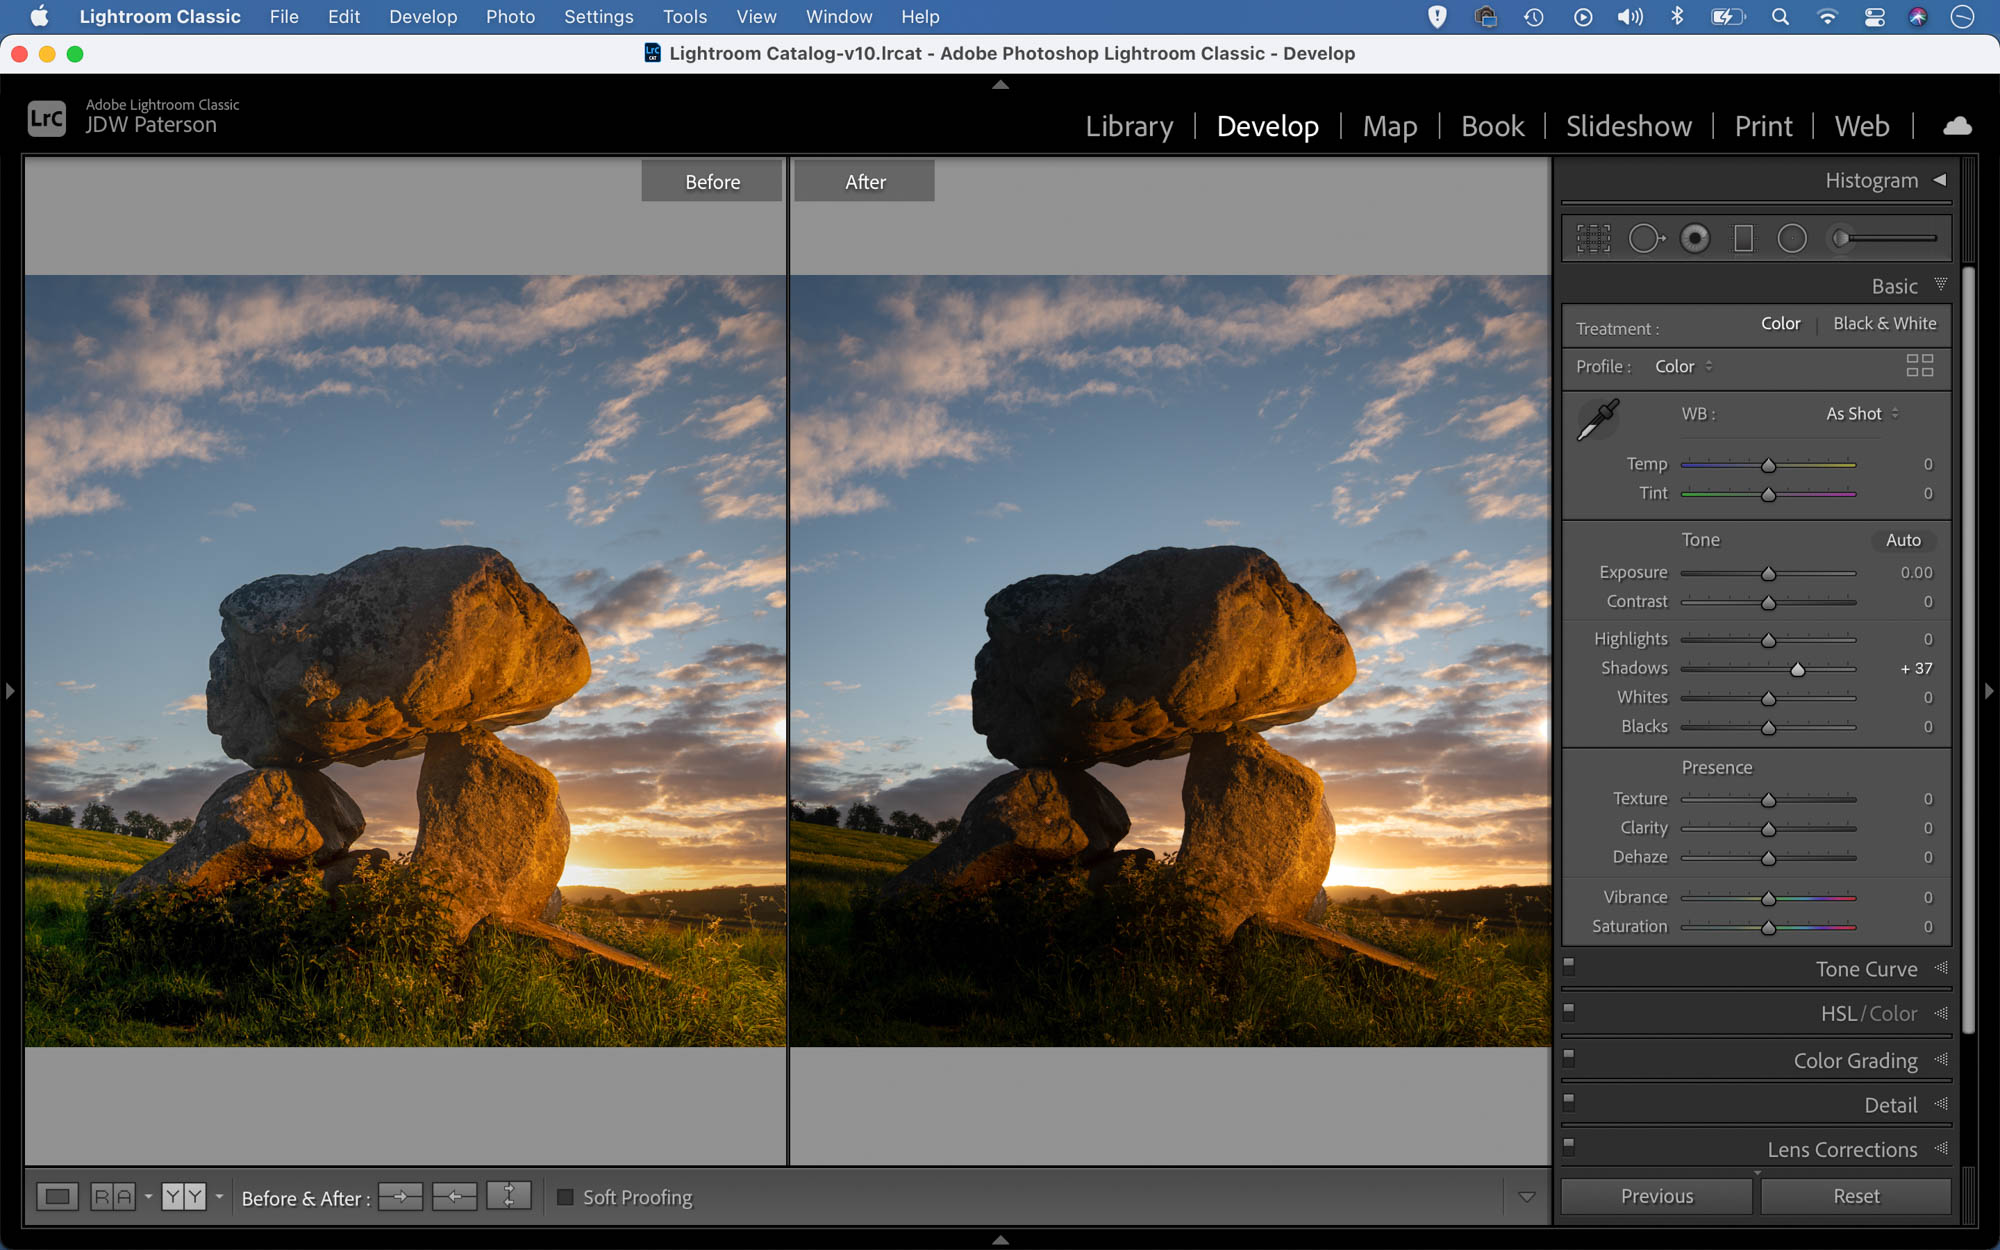 View of two versions of an image as seen in Lightroom